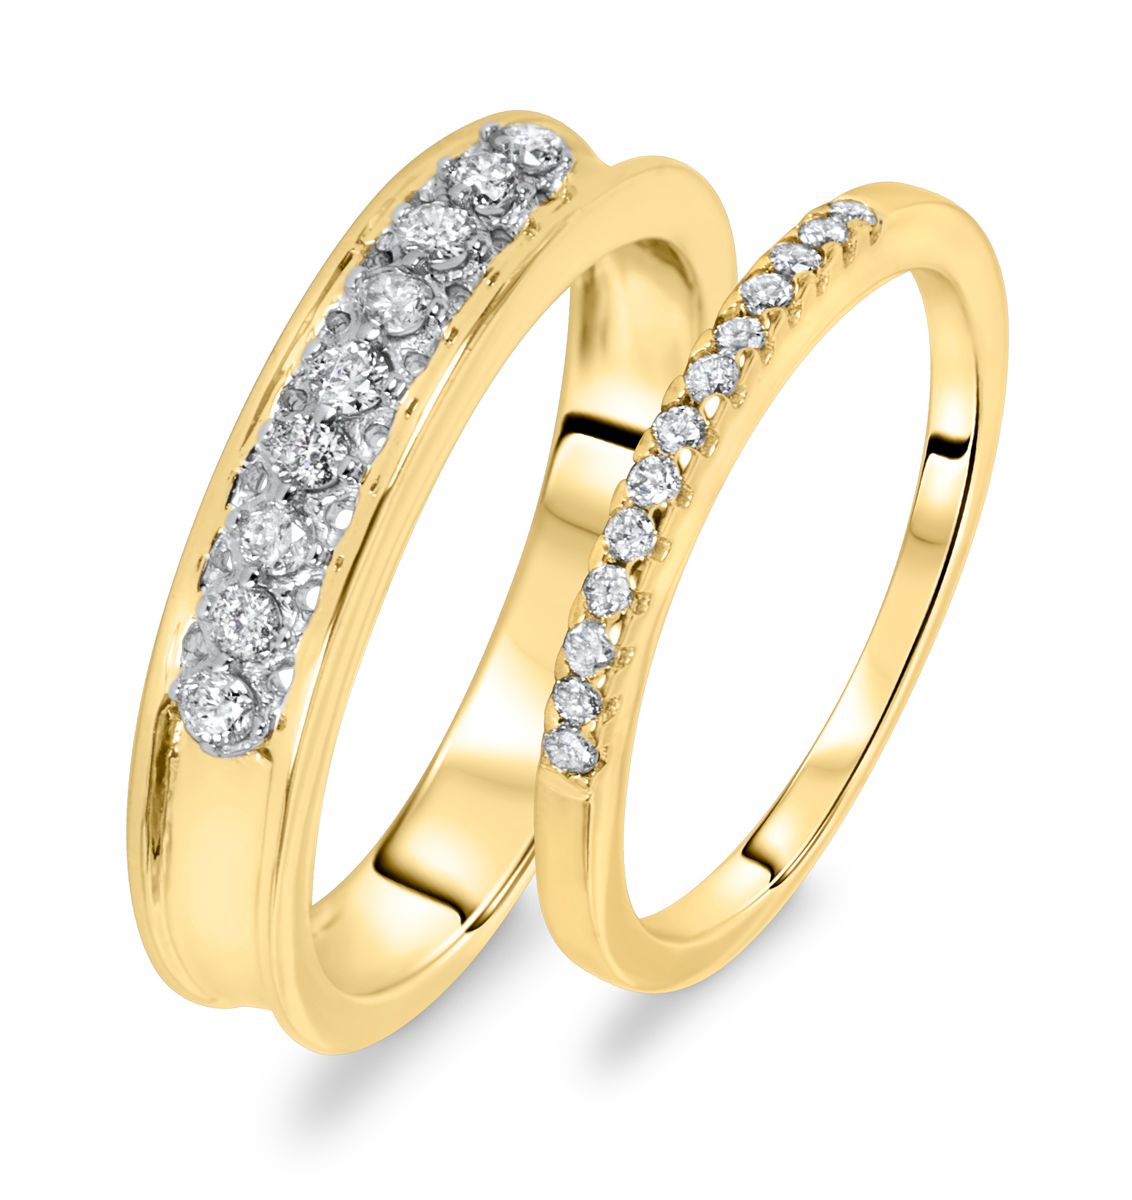 3/8 ct. t.w. diamond his and hers wedding rings 10k yellow gold